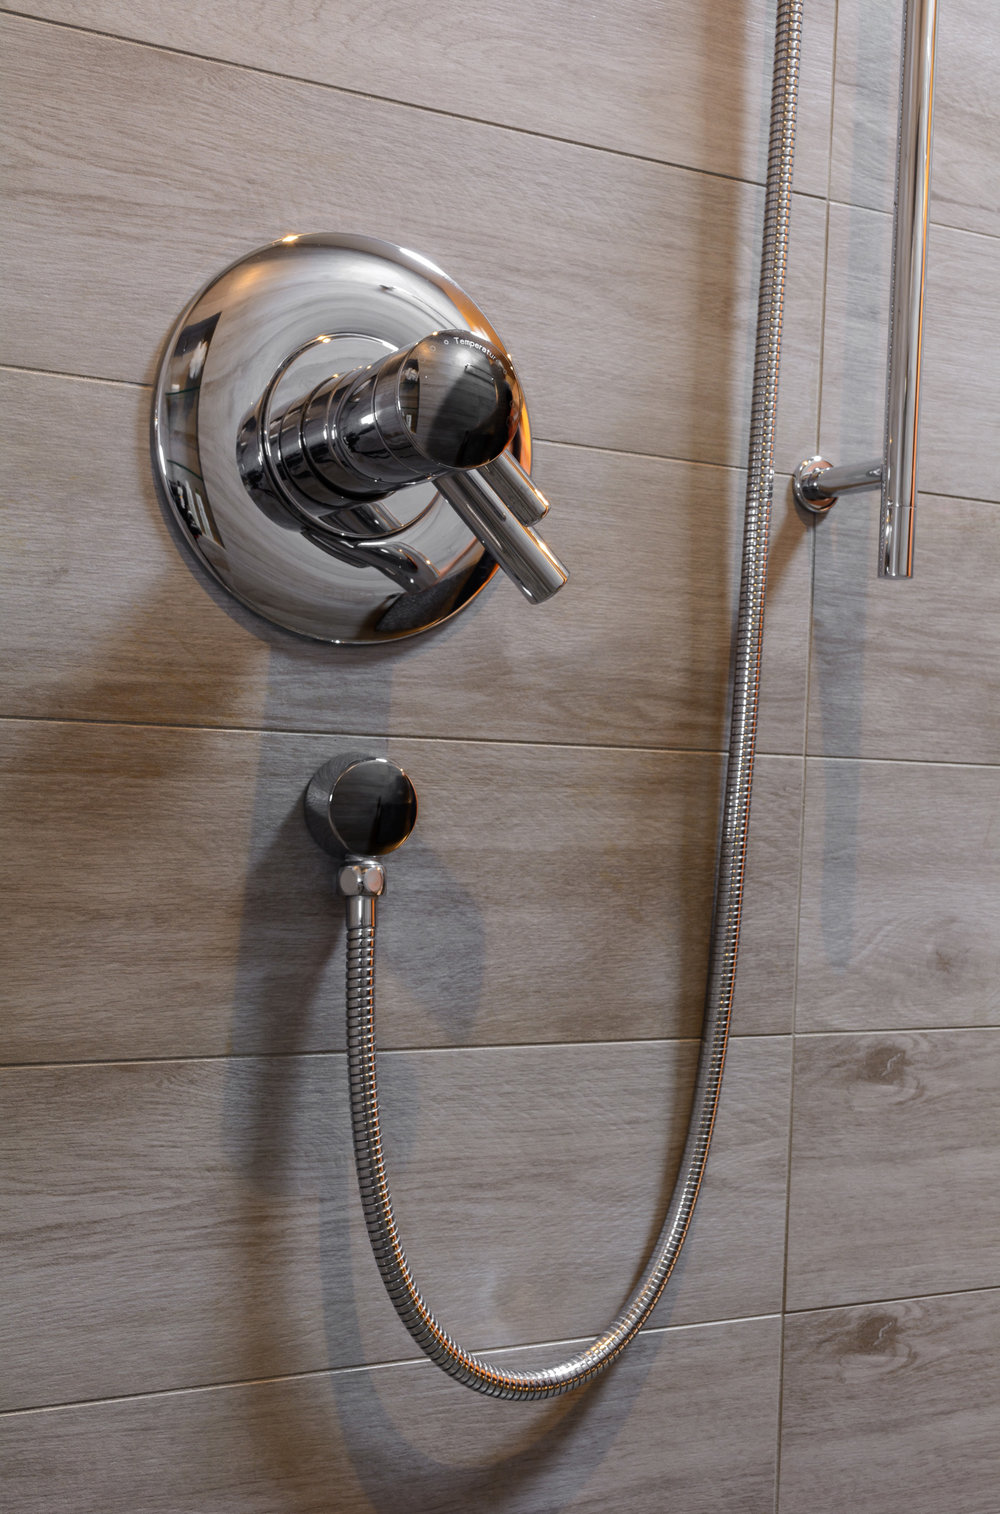 Modern shower valve with hand held fixture